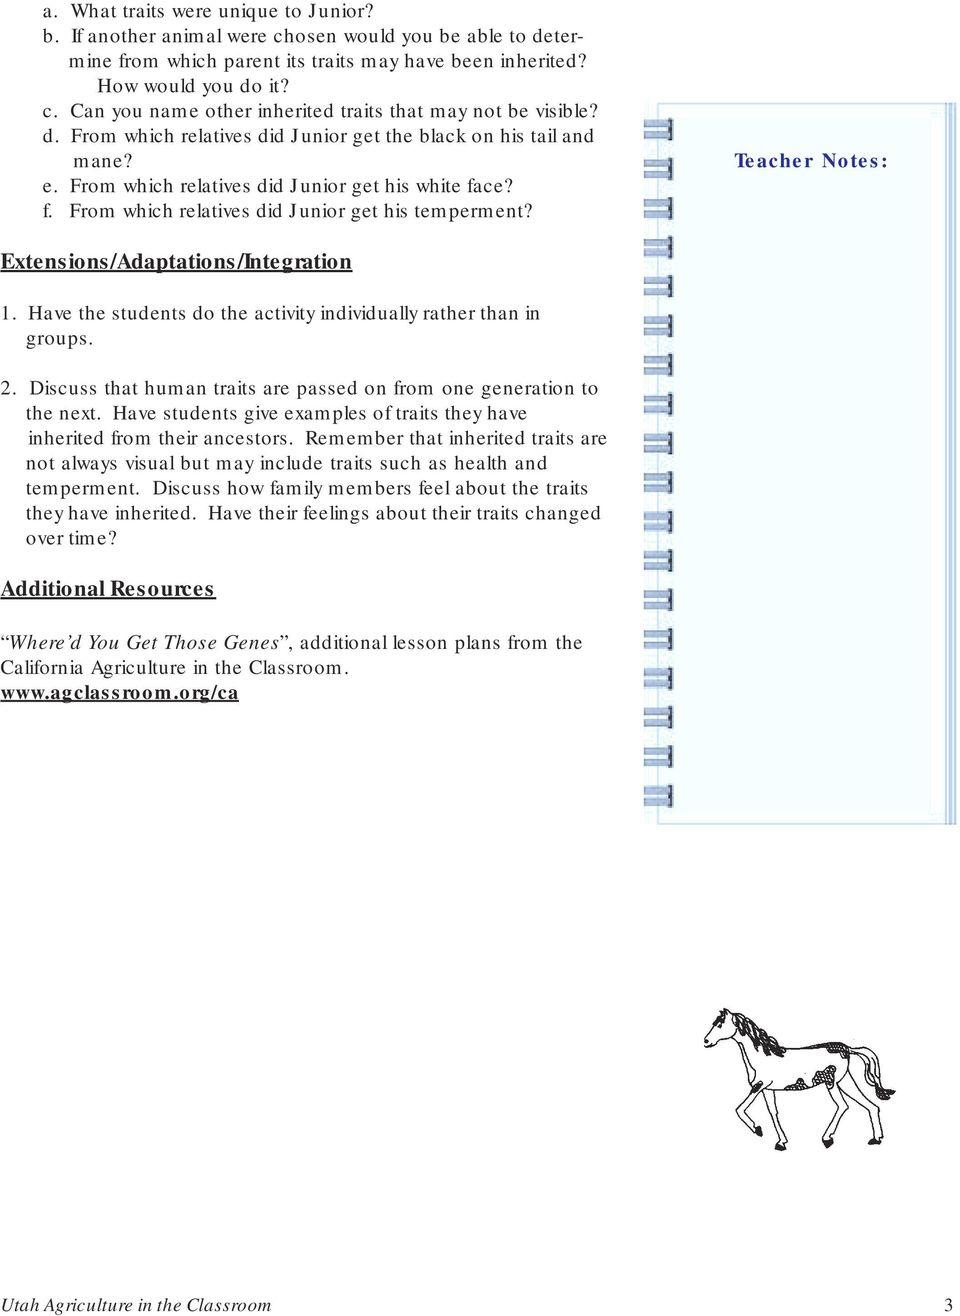 Worksheets Inherited Traits Worksheet junior s family tree inherited traits of animals pdf teacher notes extensionsadaptationsintegration 1 have the students do activity